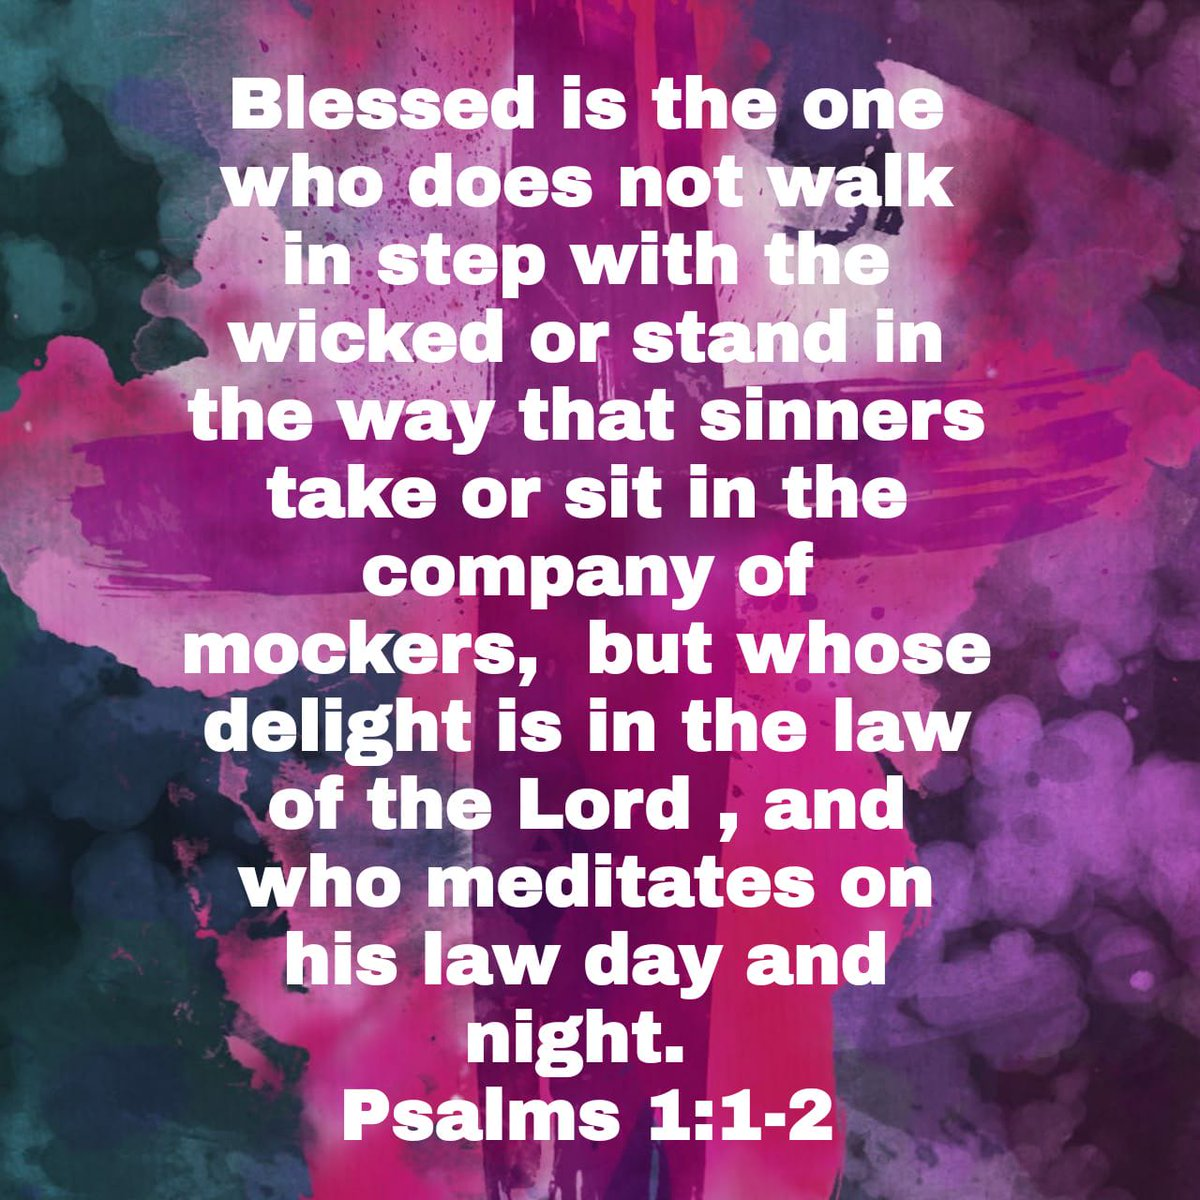 Blessed is the one who does not walk in step with the wicked or stand in the way that sinners tak… https://t.co/3kn0pmOI4r https://t.co/WttwwjtEWP